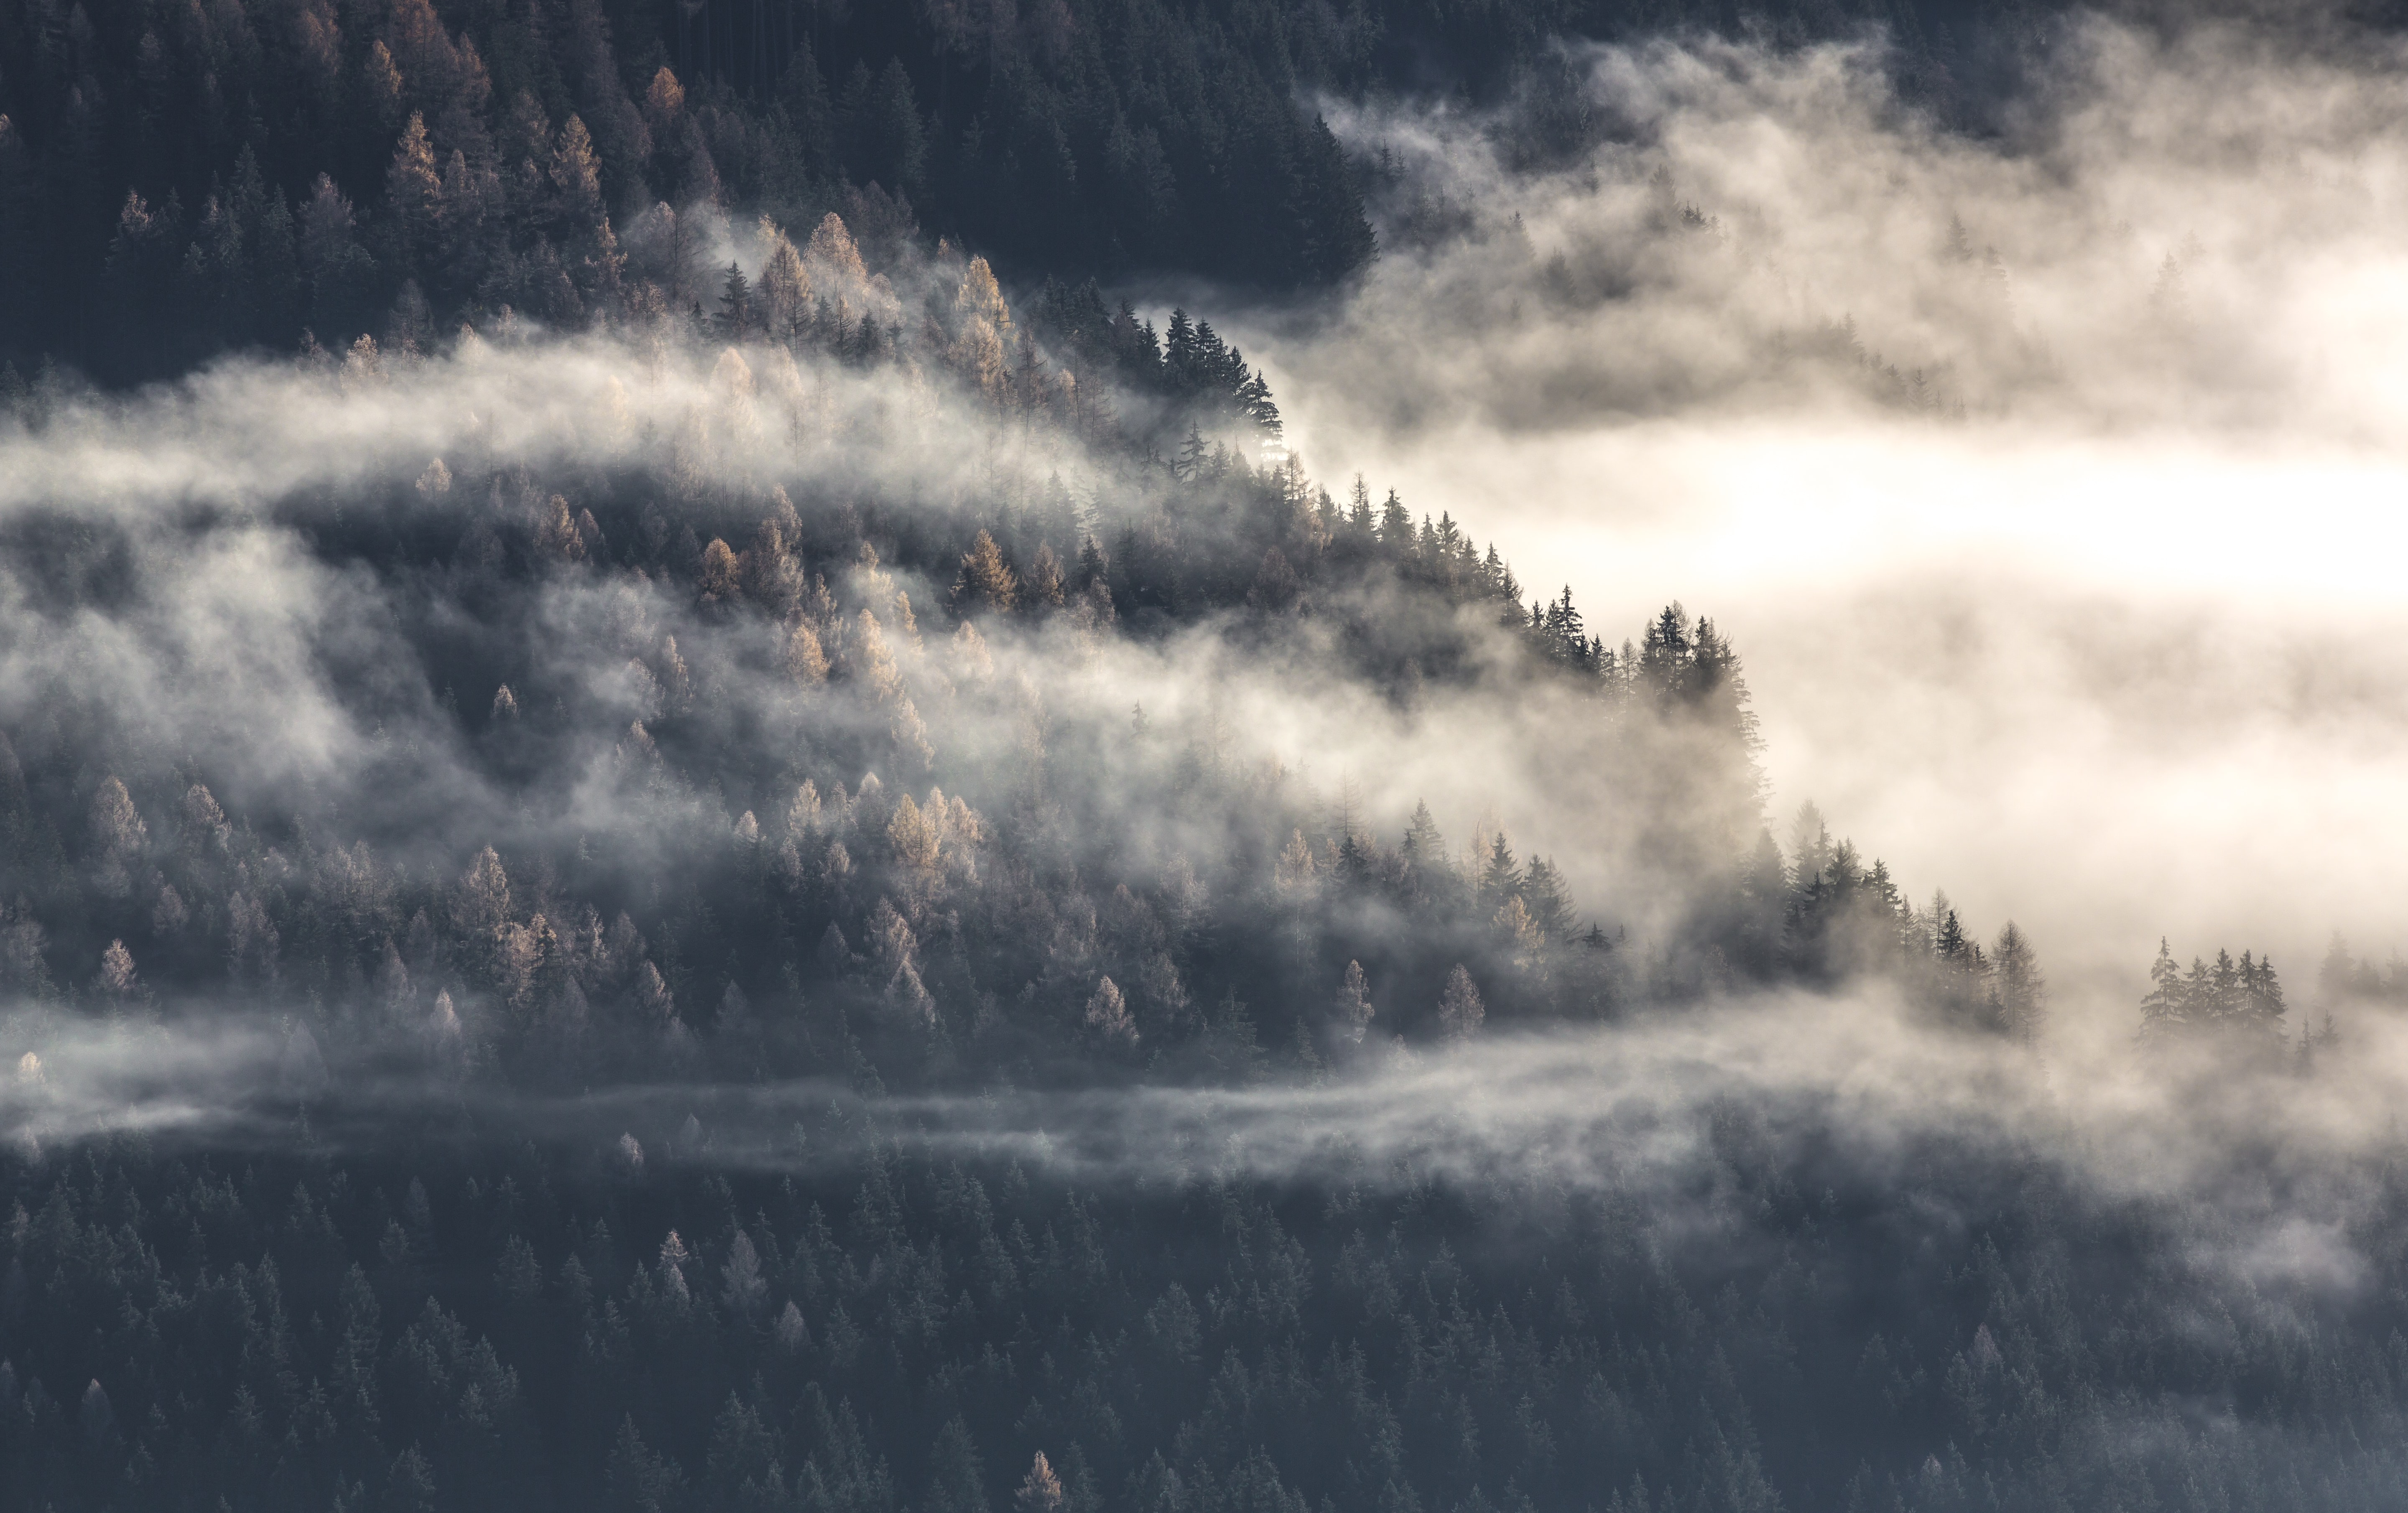 Patchy clouds enveloping a slope covered with evergreen trees